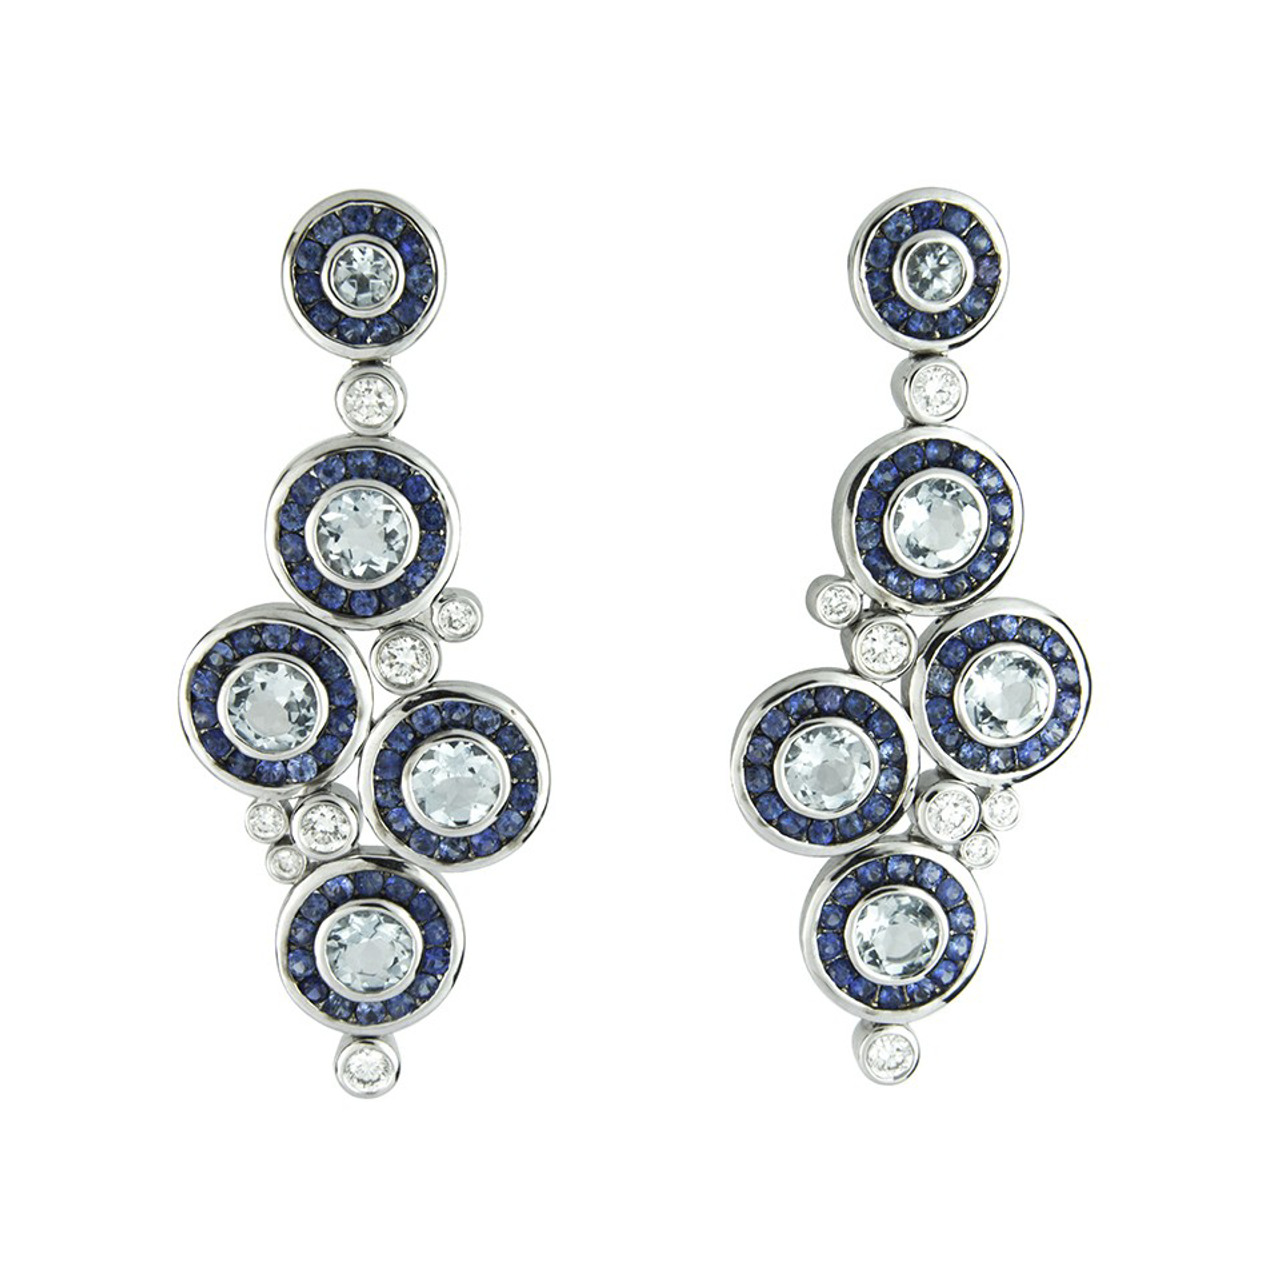 18ct White Gold Dewdrop Earrings